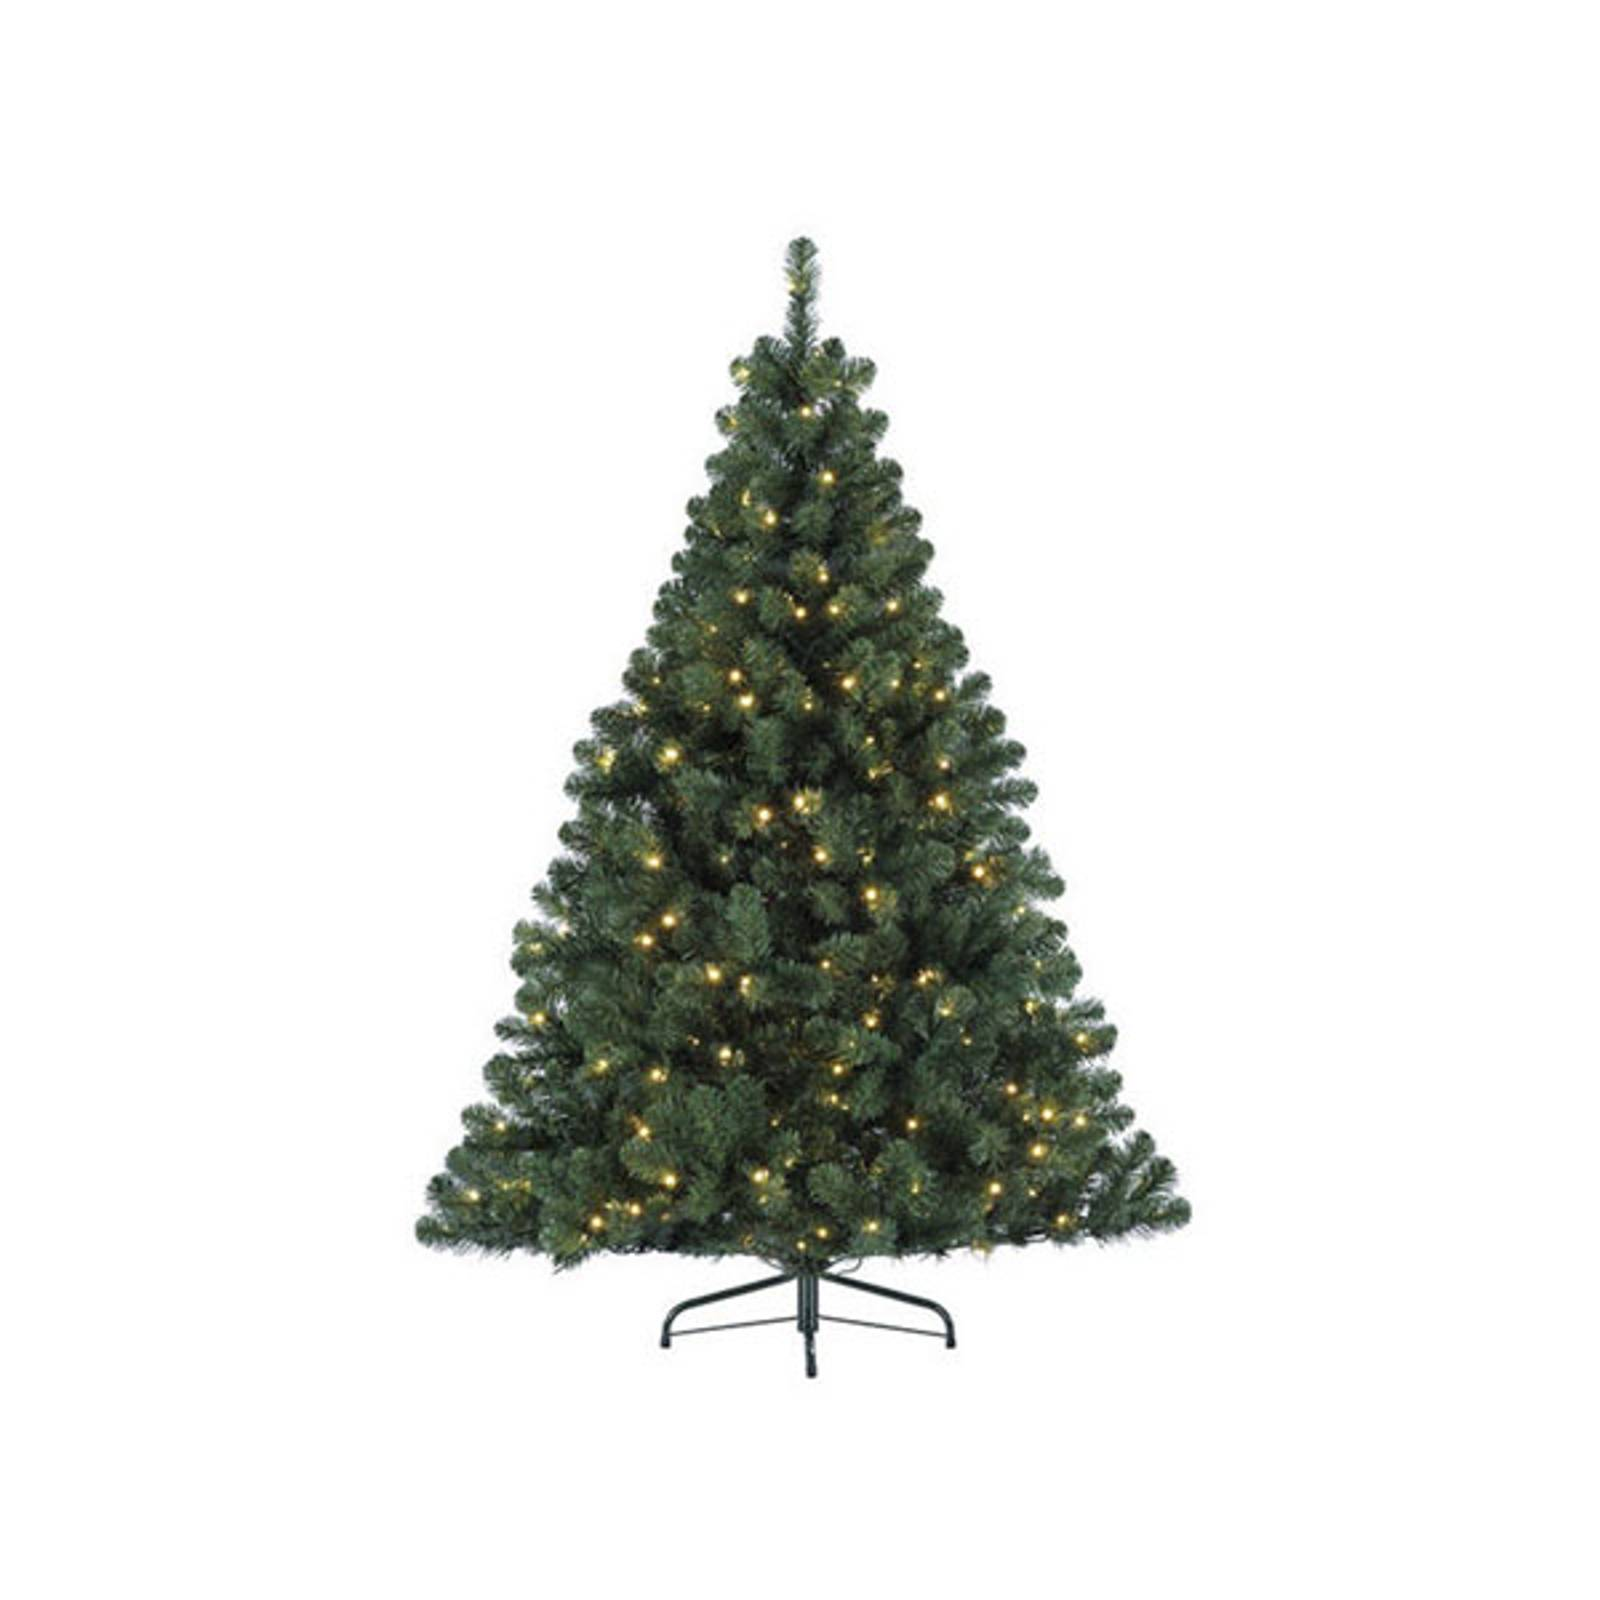 Imperial LED tree for indoors, green, 120cm